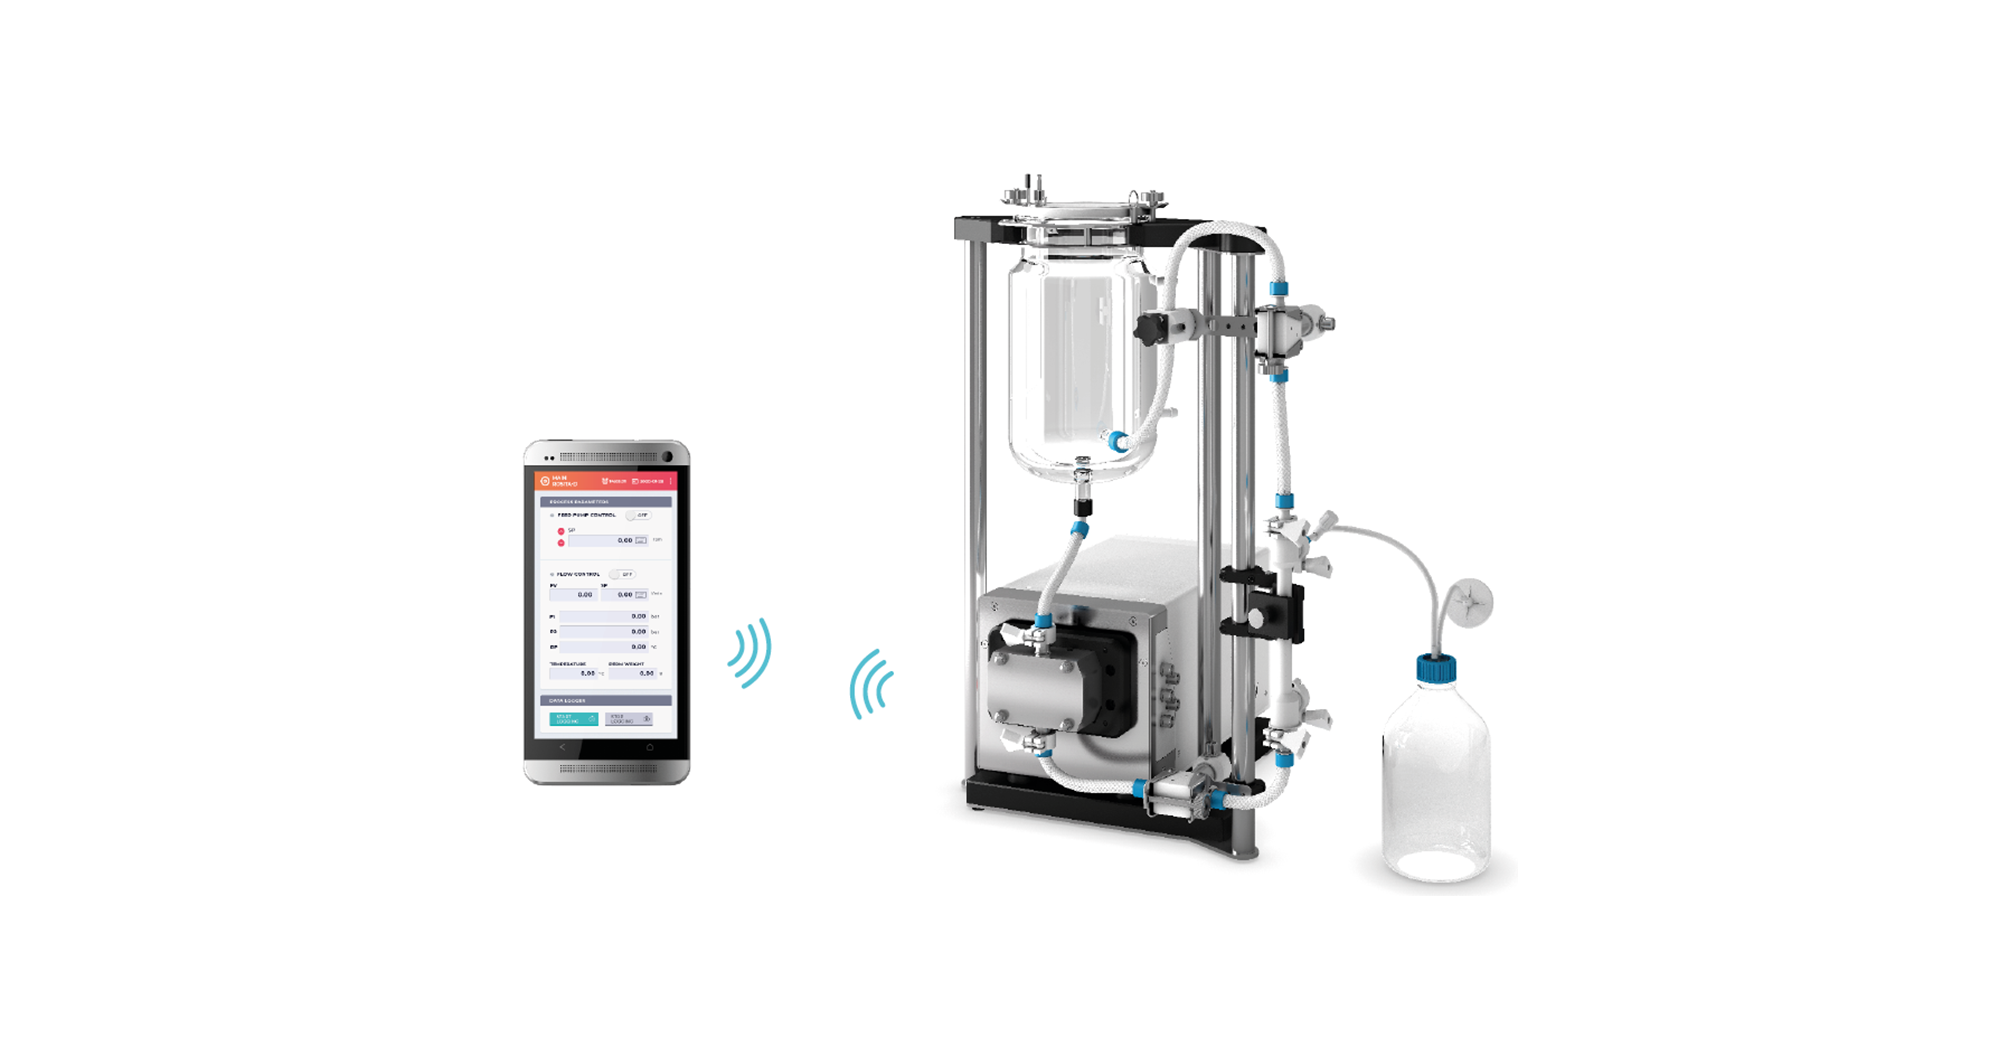 M1 Benchtop Tangential Flow Filtration system